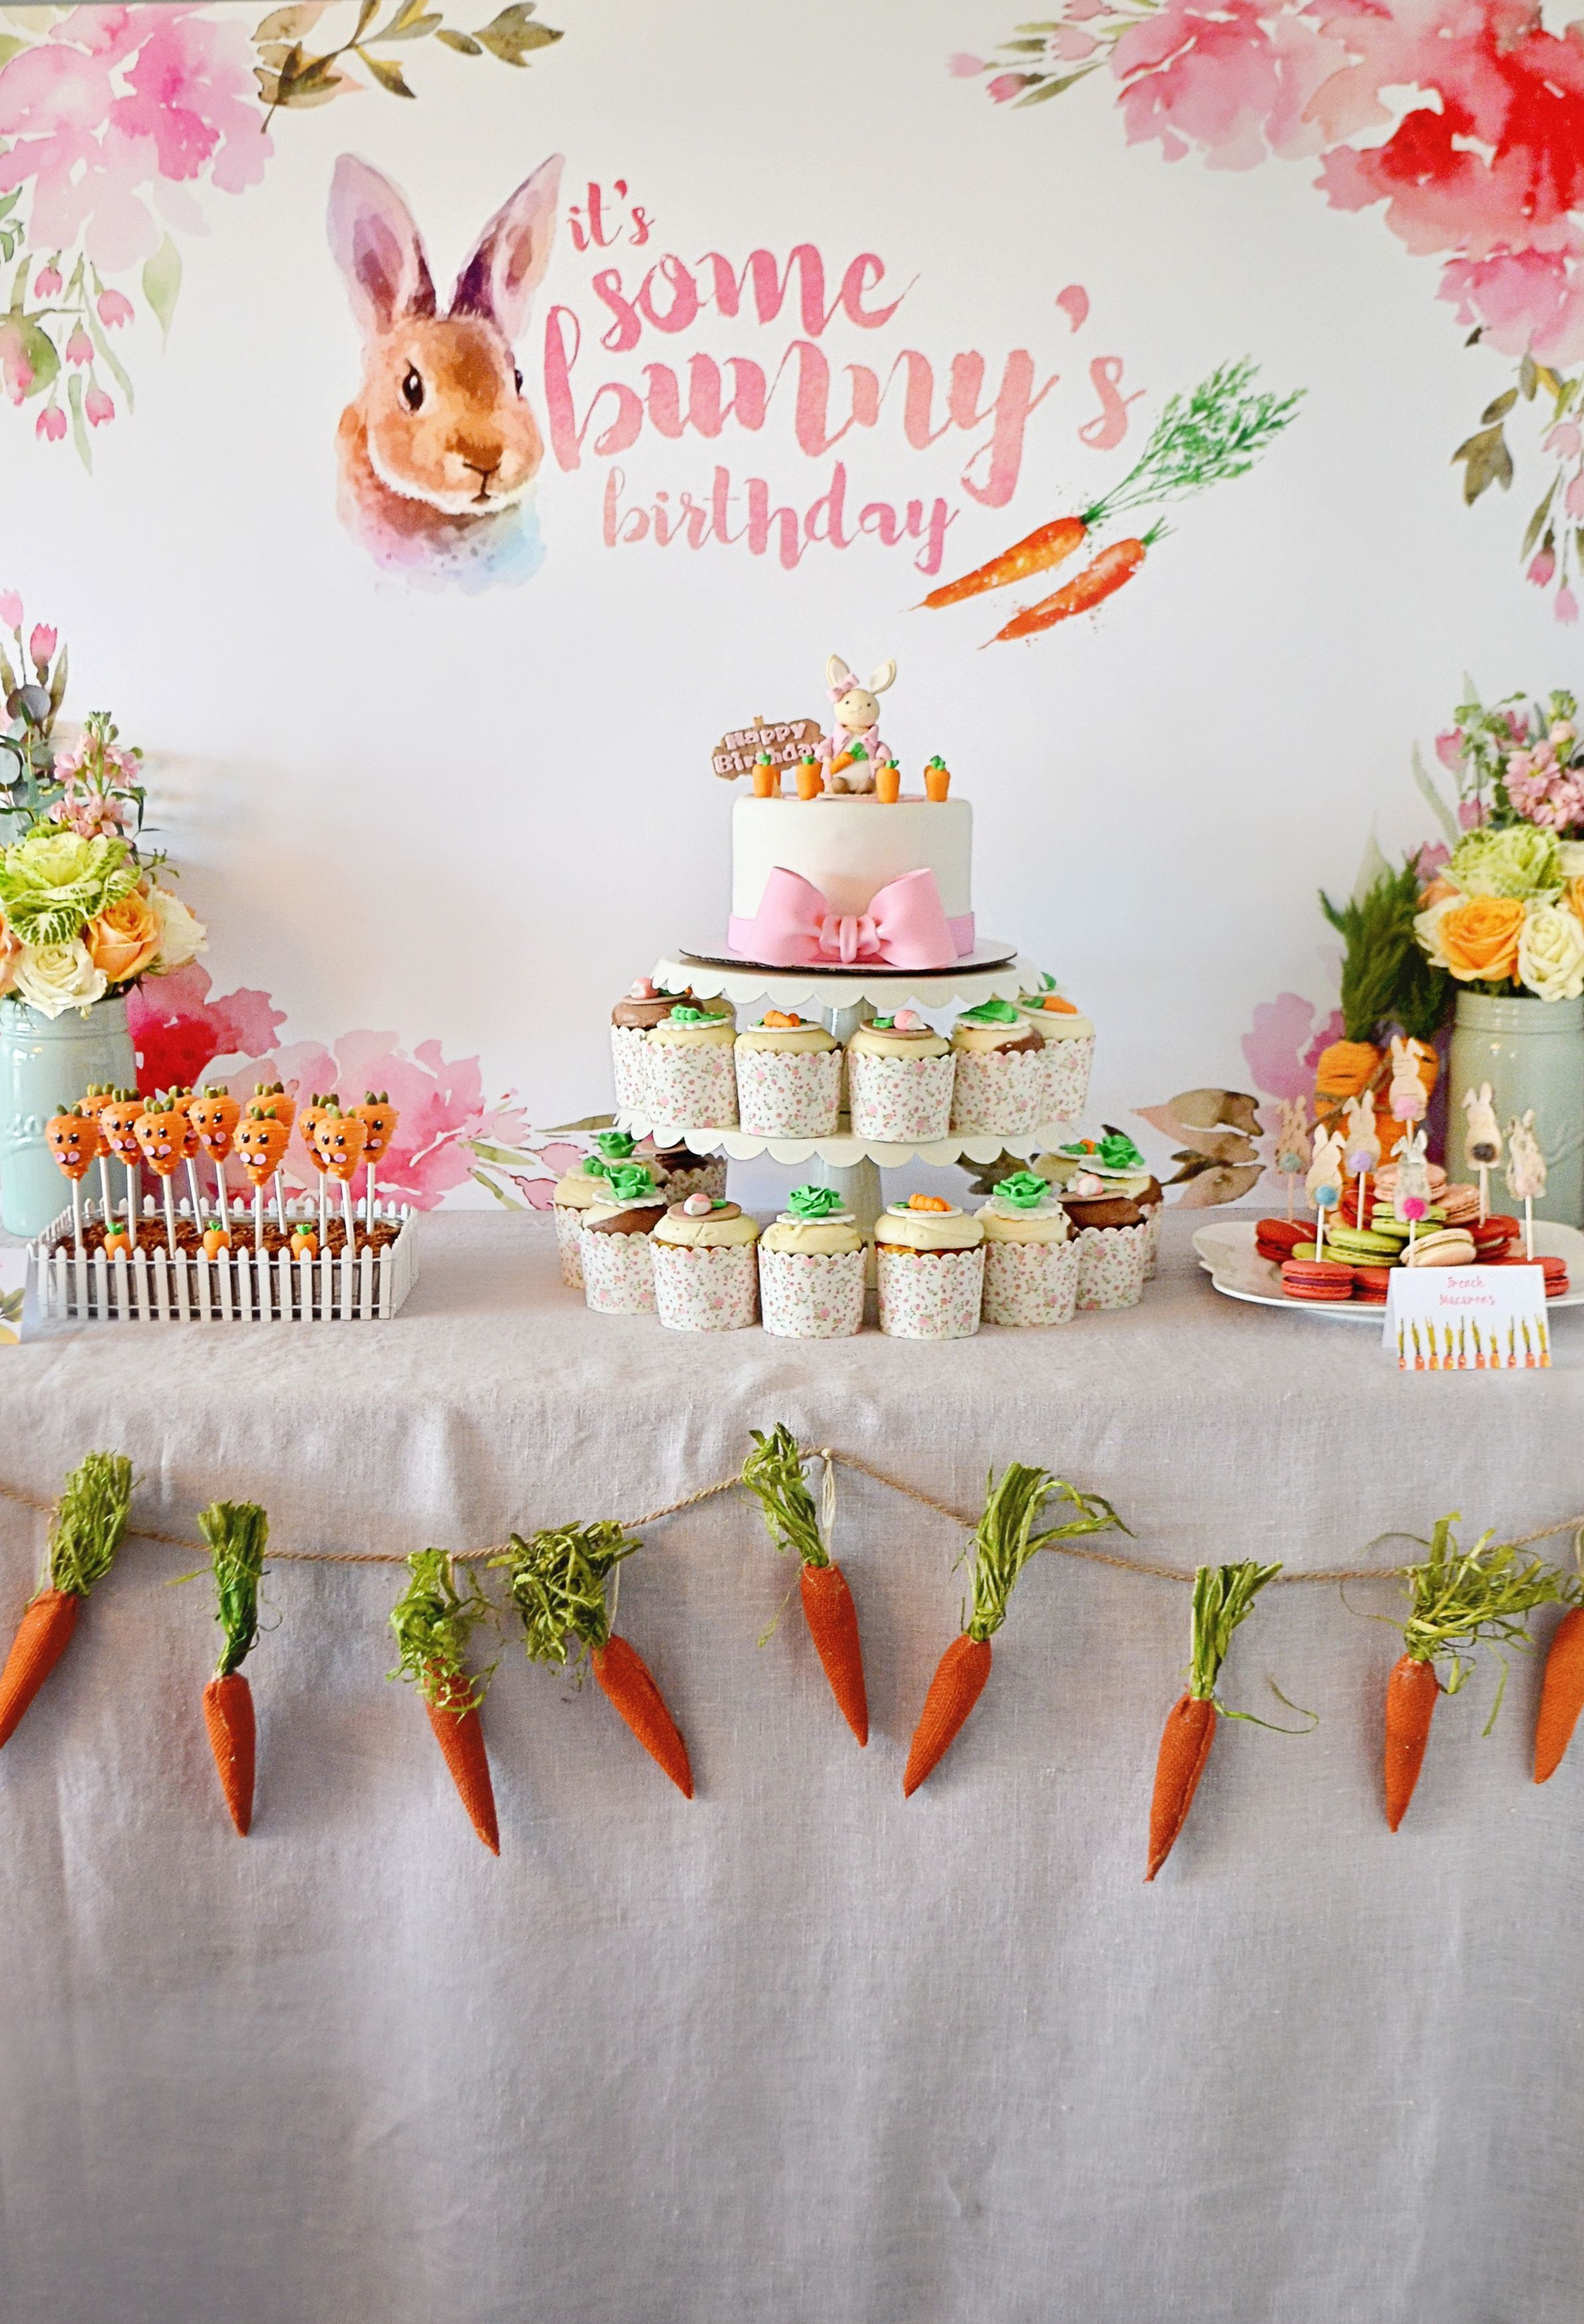 Shop the Party: Bunny-Themed Party | Themed birthday parties ...